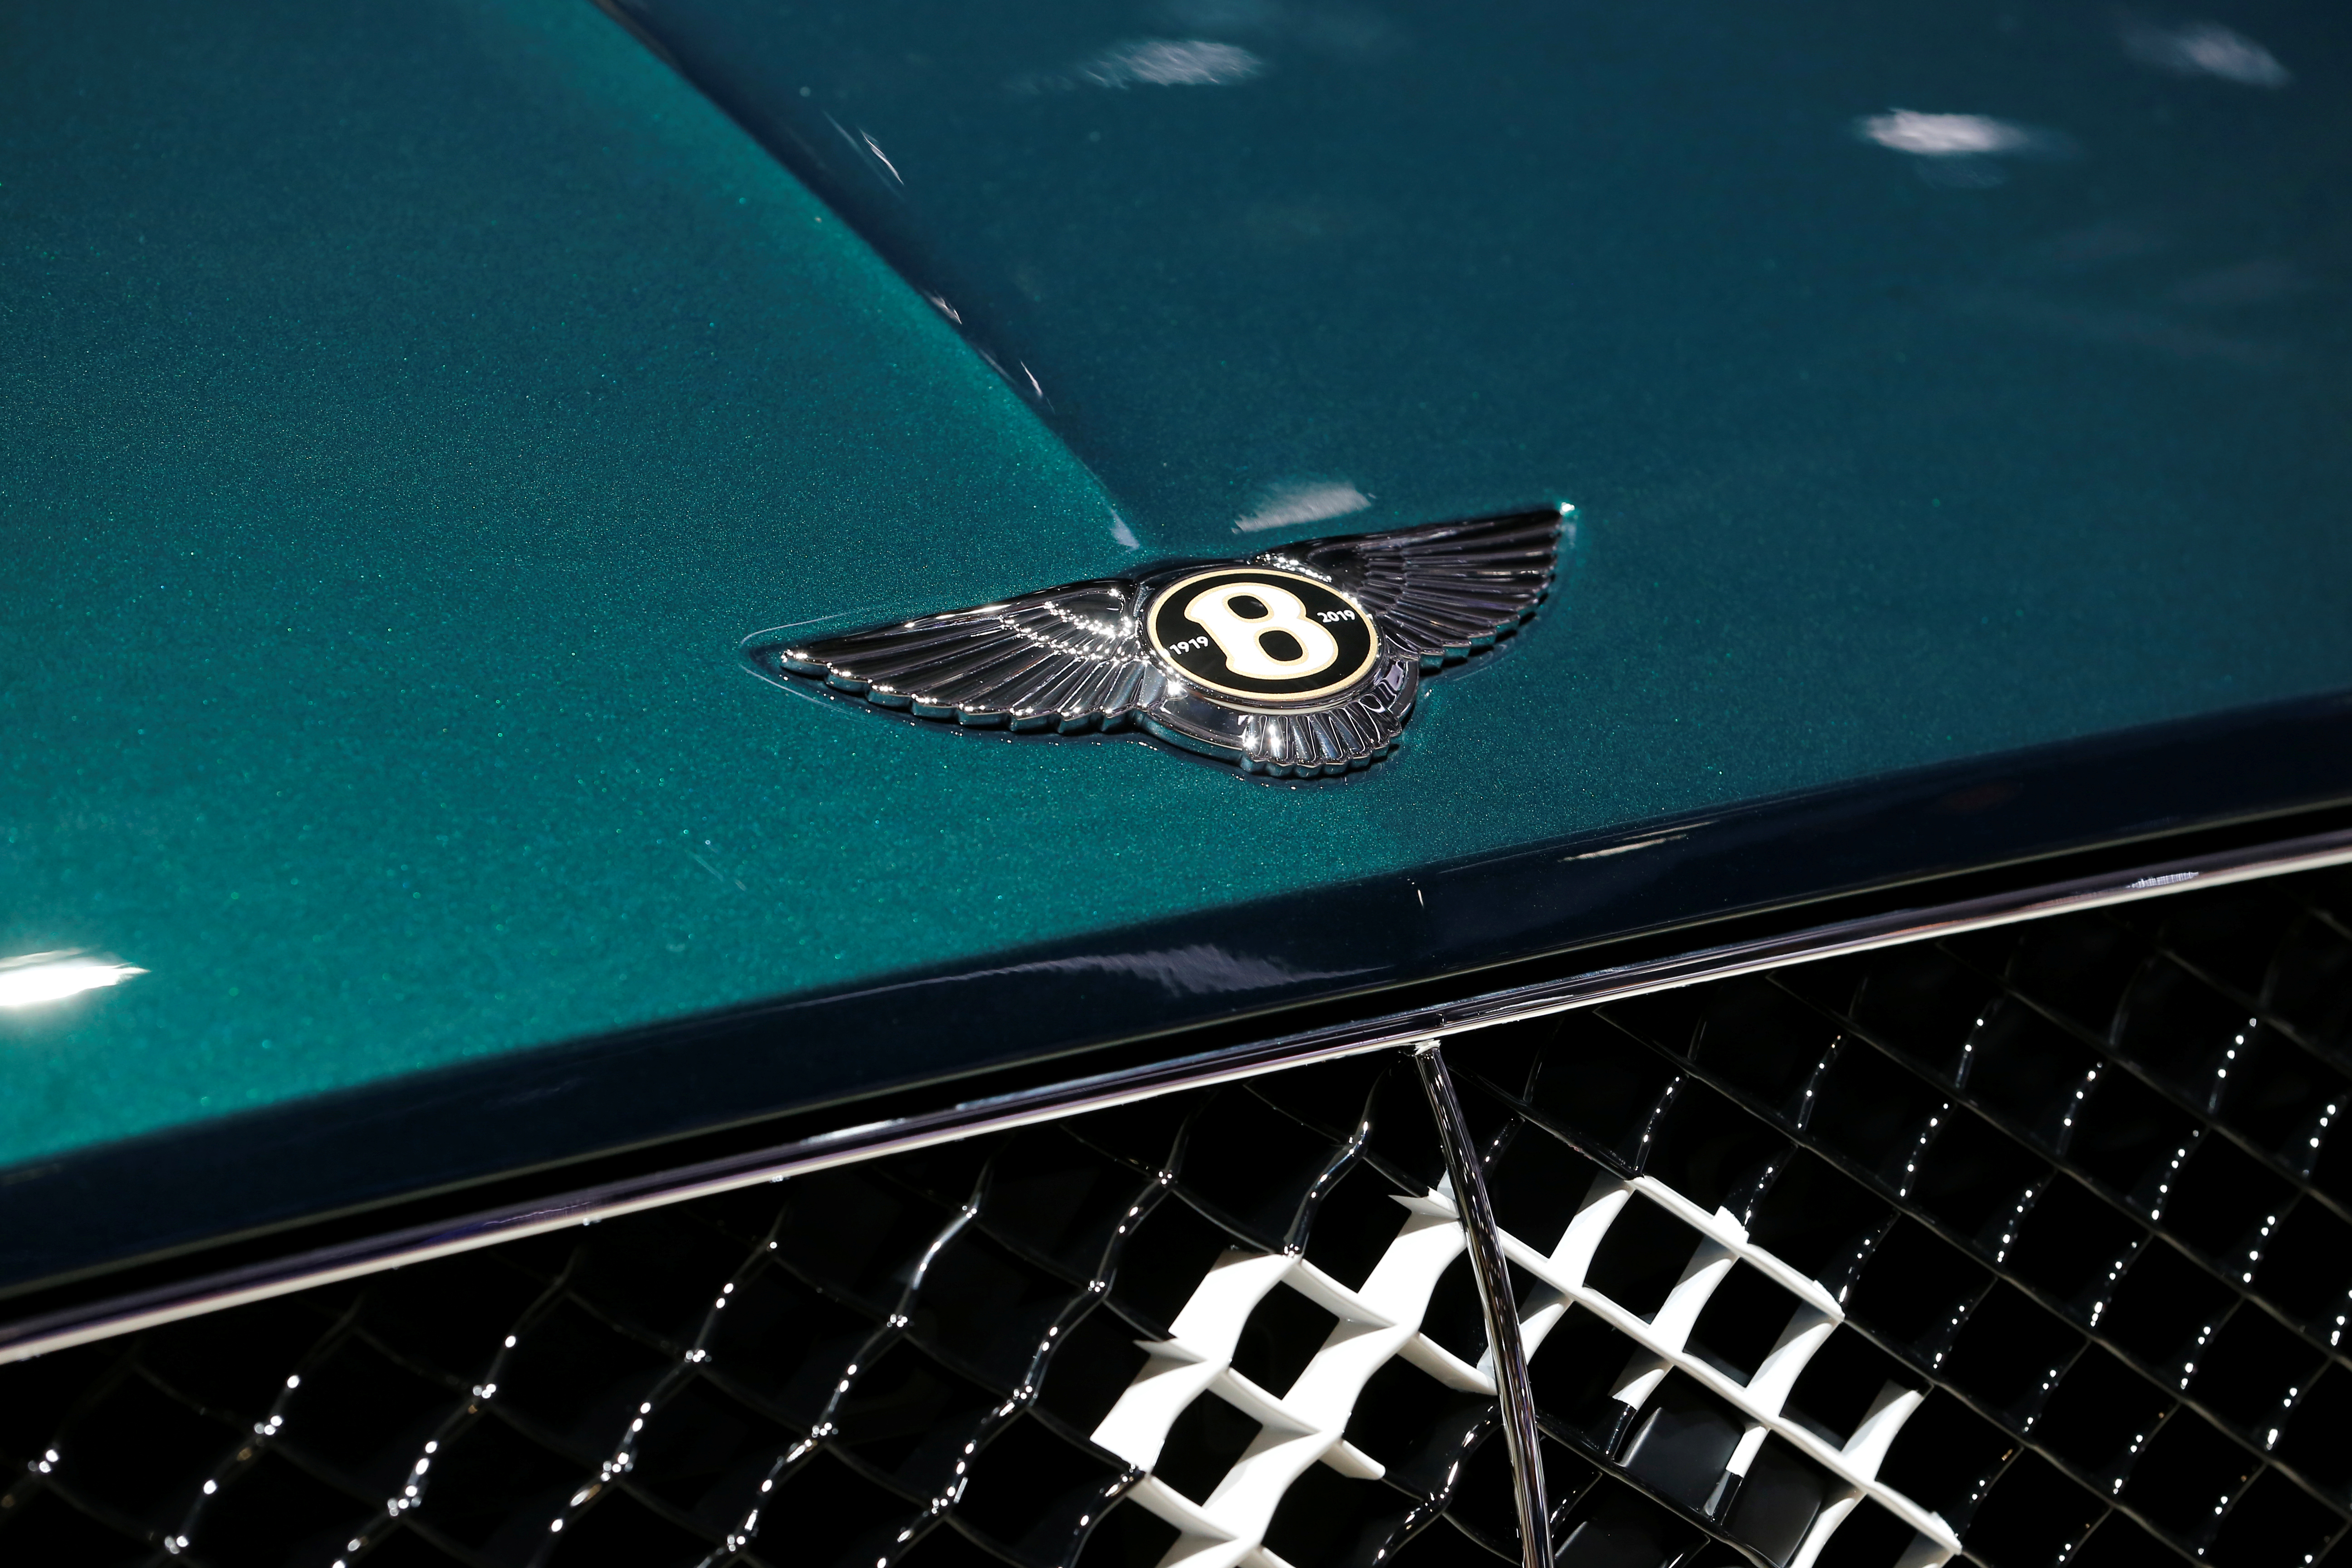 The Bentley logo is seen on a new car model at the 89th Geneva International Motor Show in Geneva, Switzerland March 5, 2019. REUTERS/Pierre Albouy